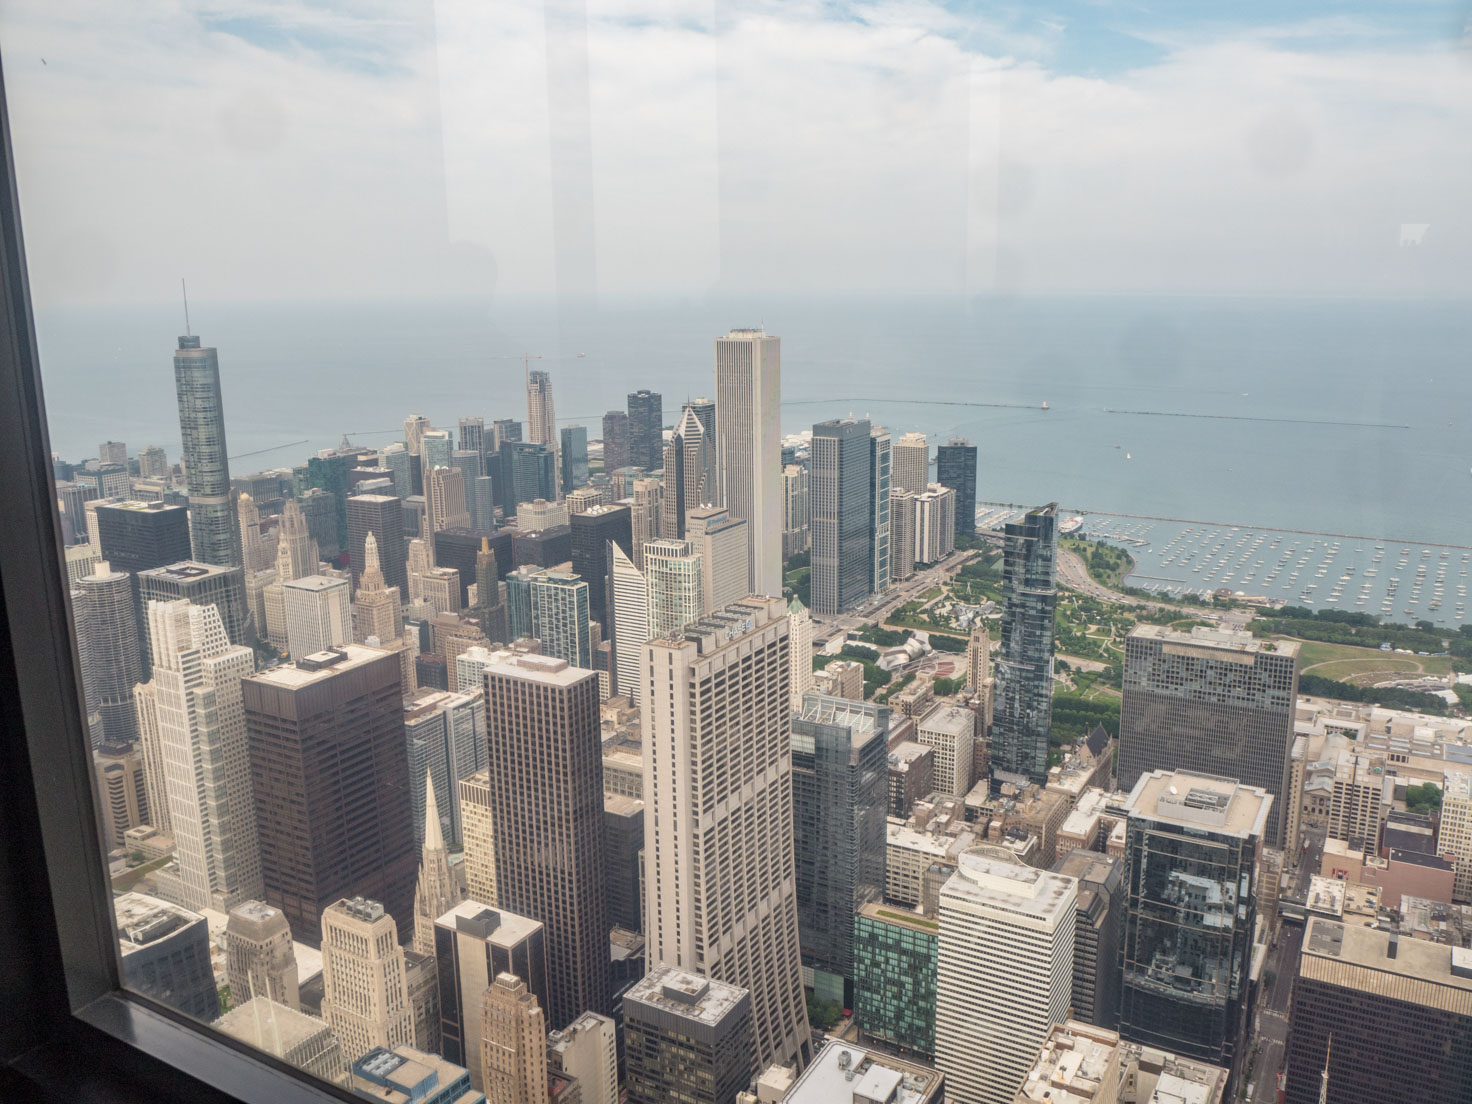 Skydeck at Willis Tower in Chicago view